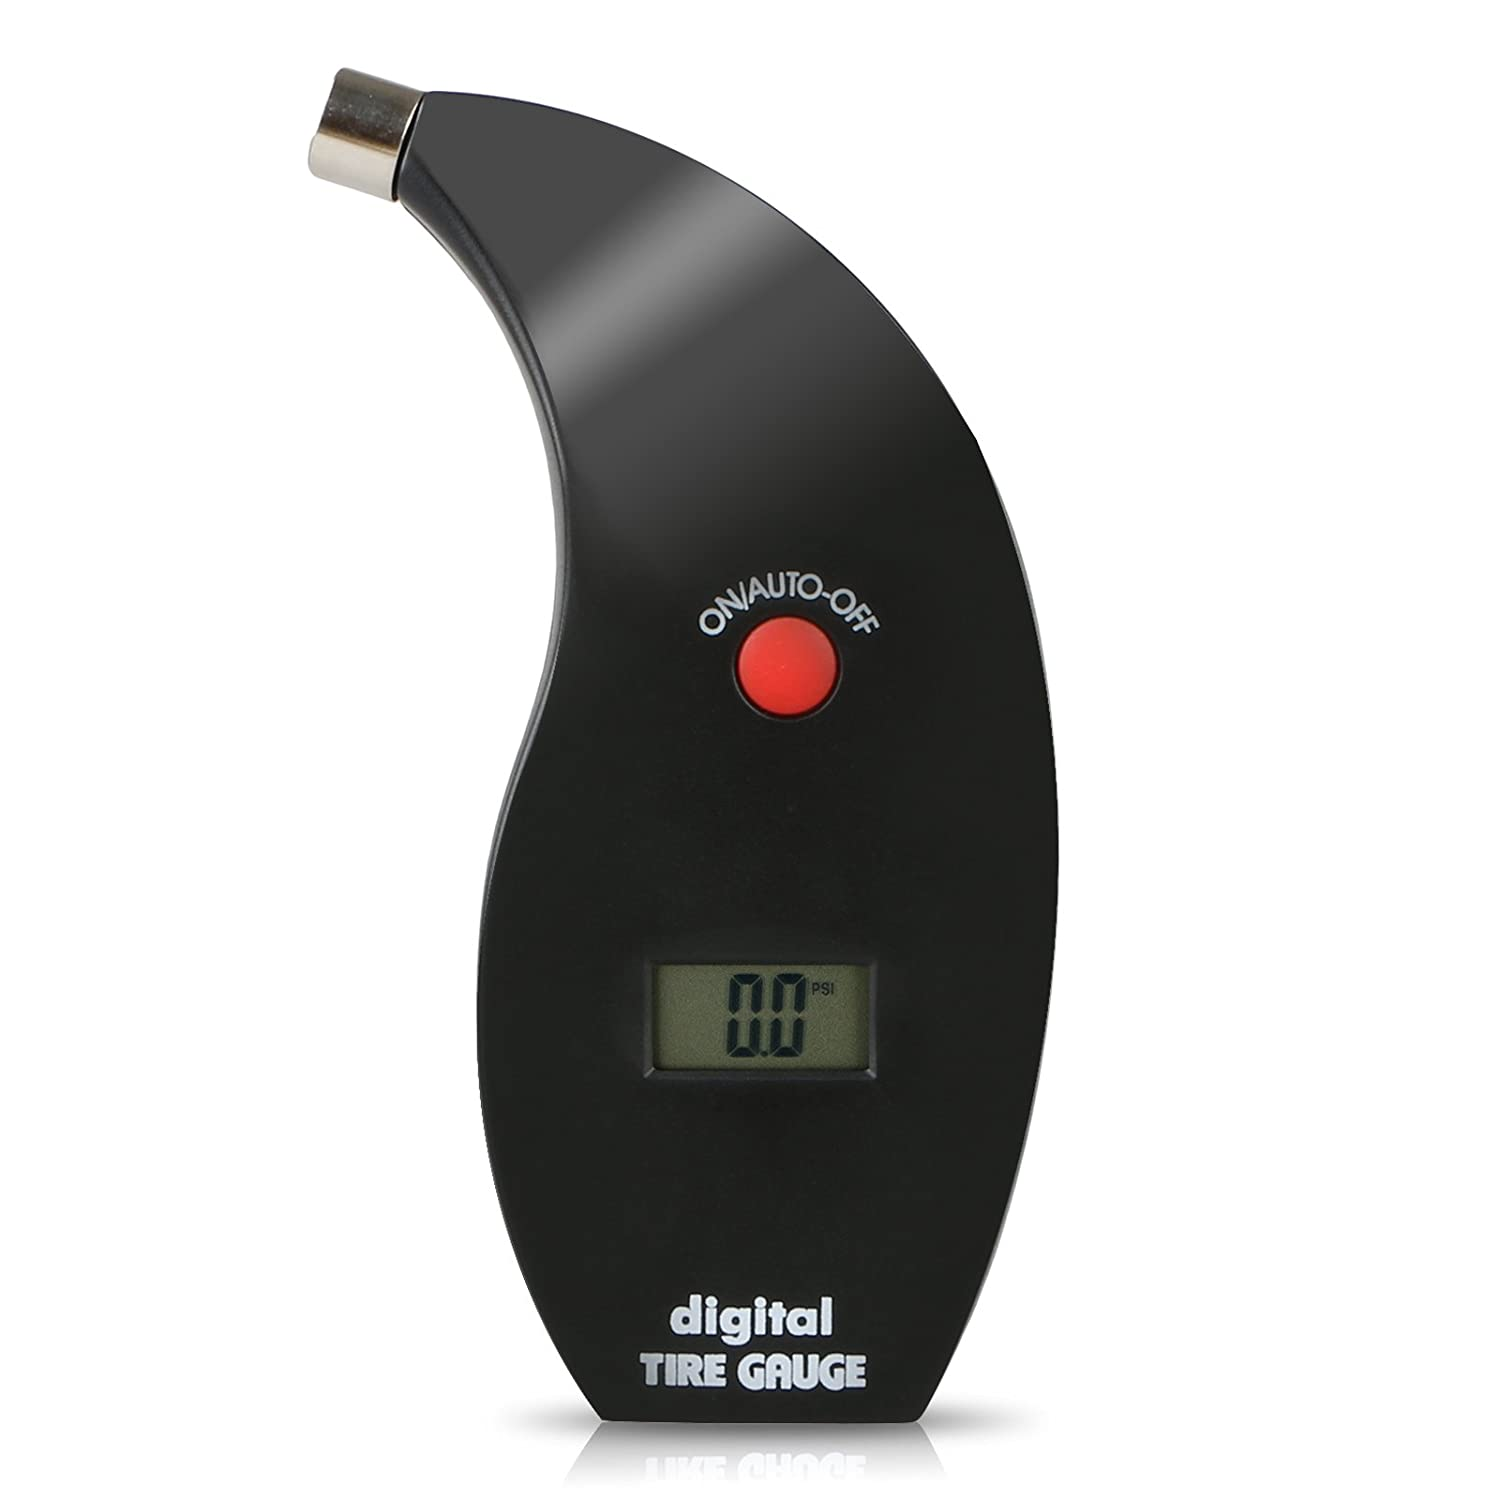 Linkstyle Tire Digital Pressure Gauge - Protect Your Tires and Monitor Tire Pressure. For Your Car, Bicycle, or Motorcycle